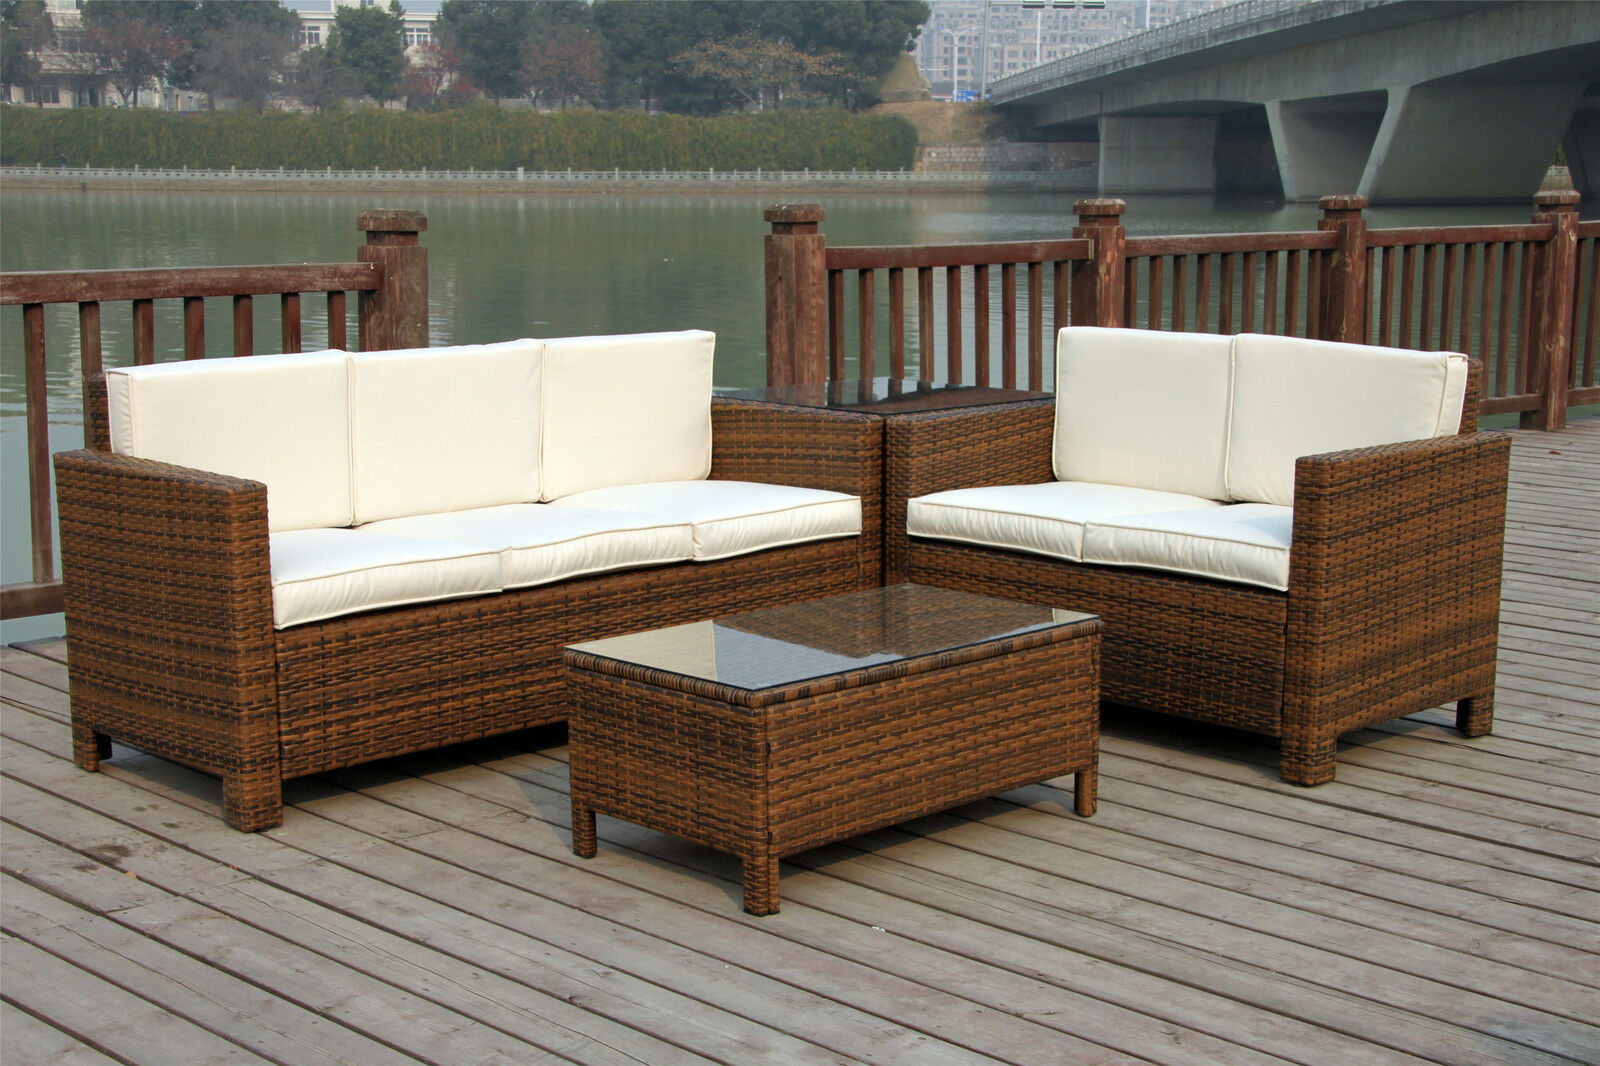 Rattan Garden Sofa Set Uk Rattan Garden Outdoor Wicker Patio Furniture Conservatory